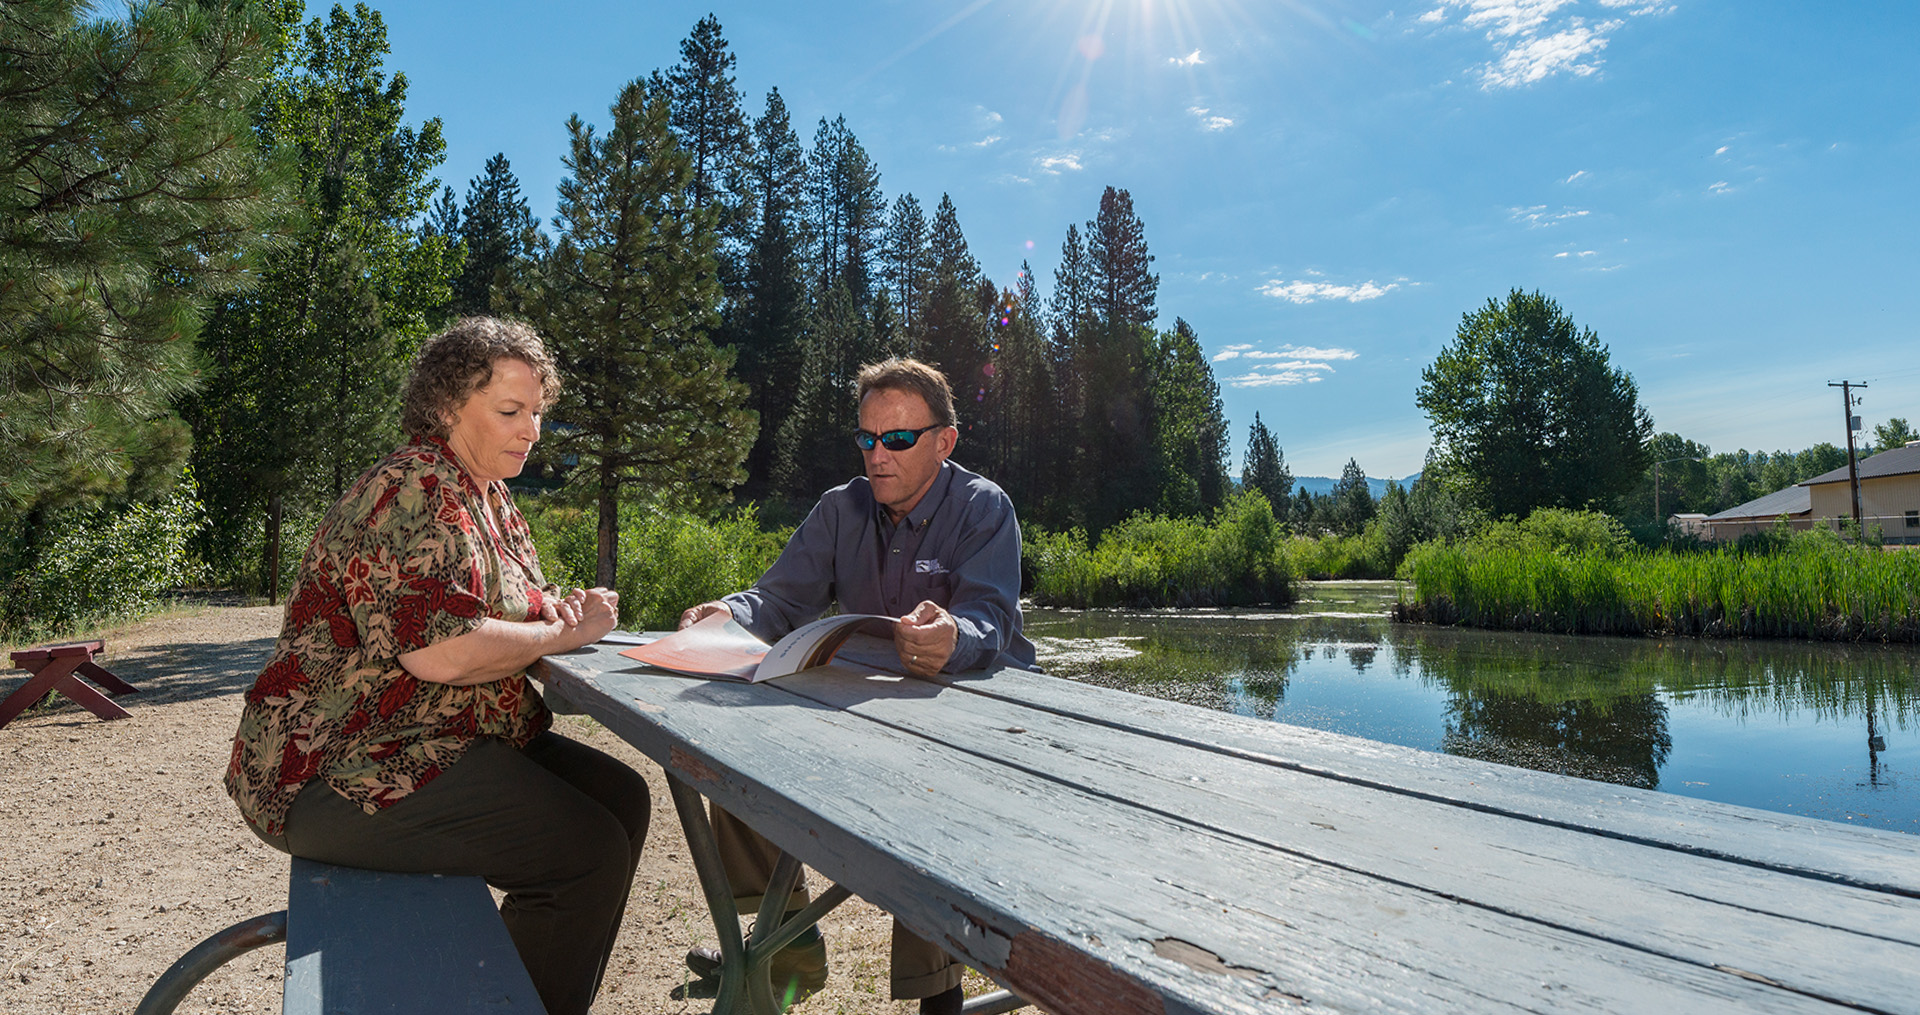 Idaho power customer speaking with an Idaho Power Representative near a river